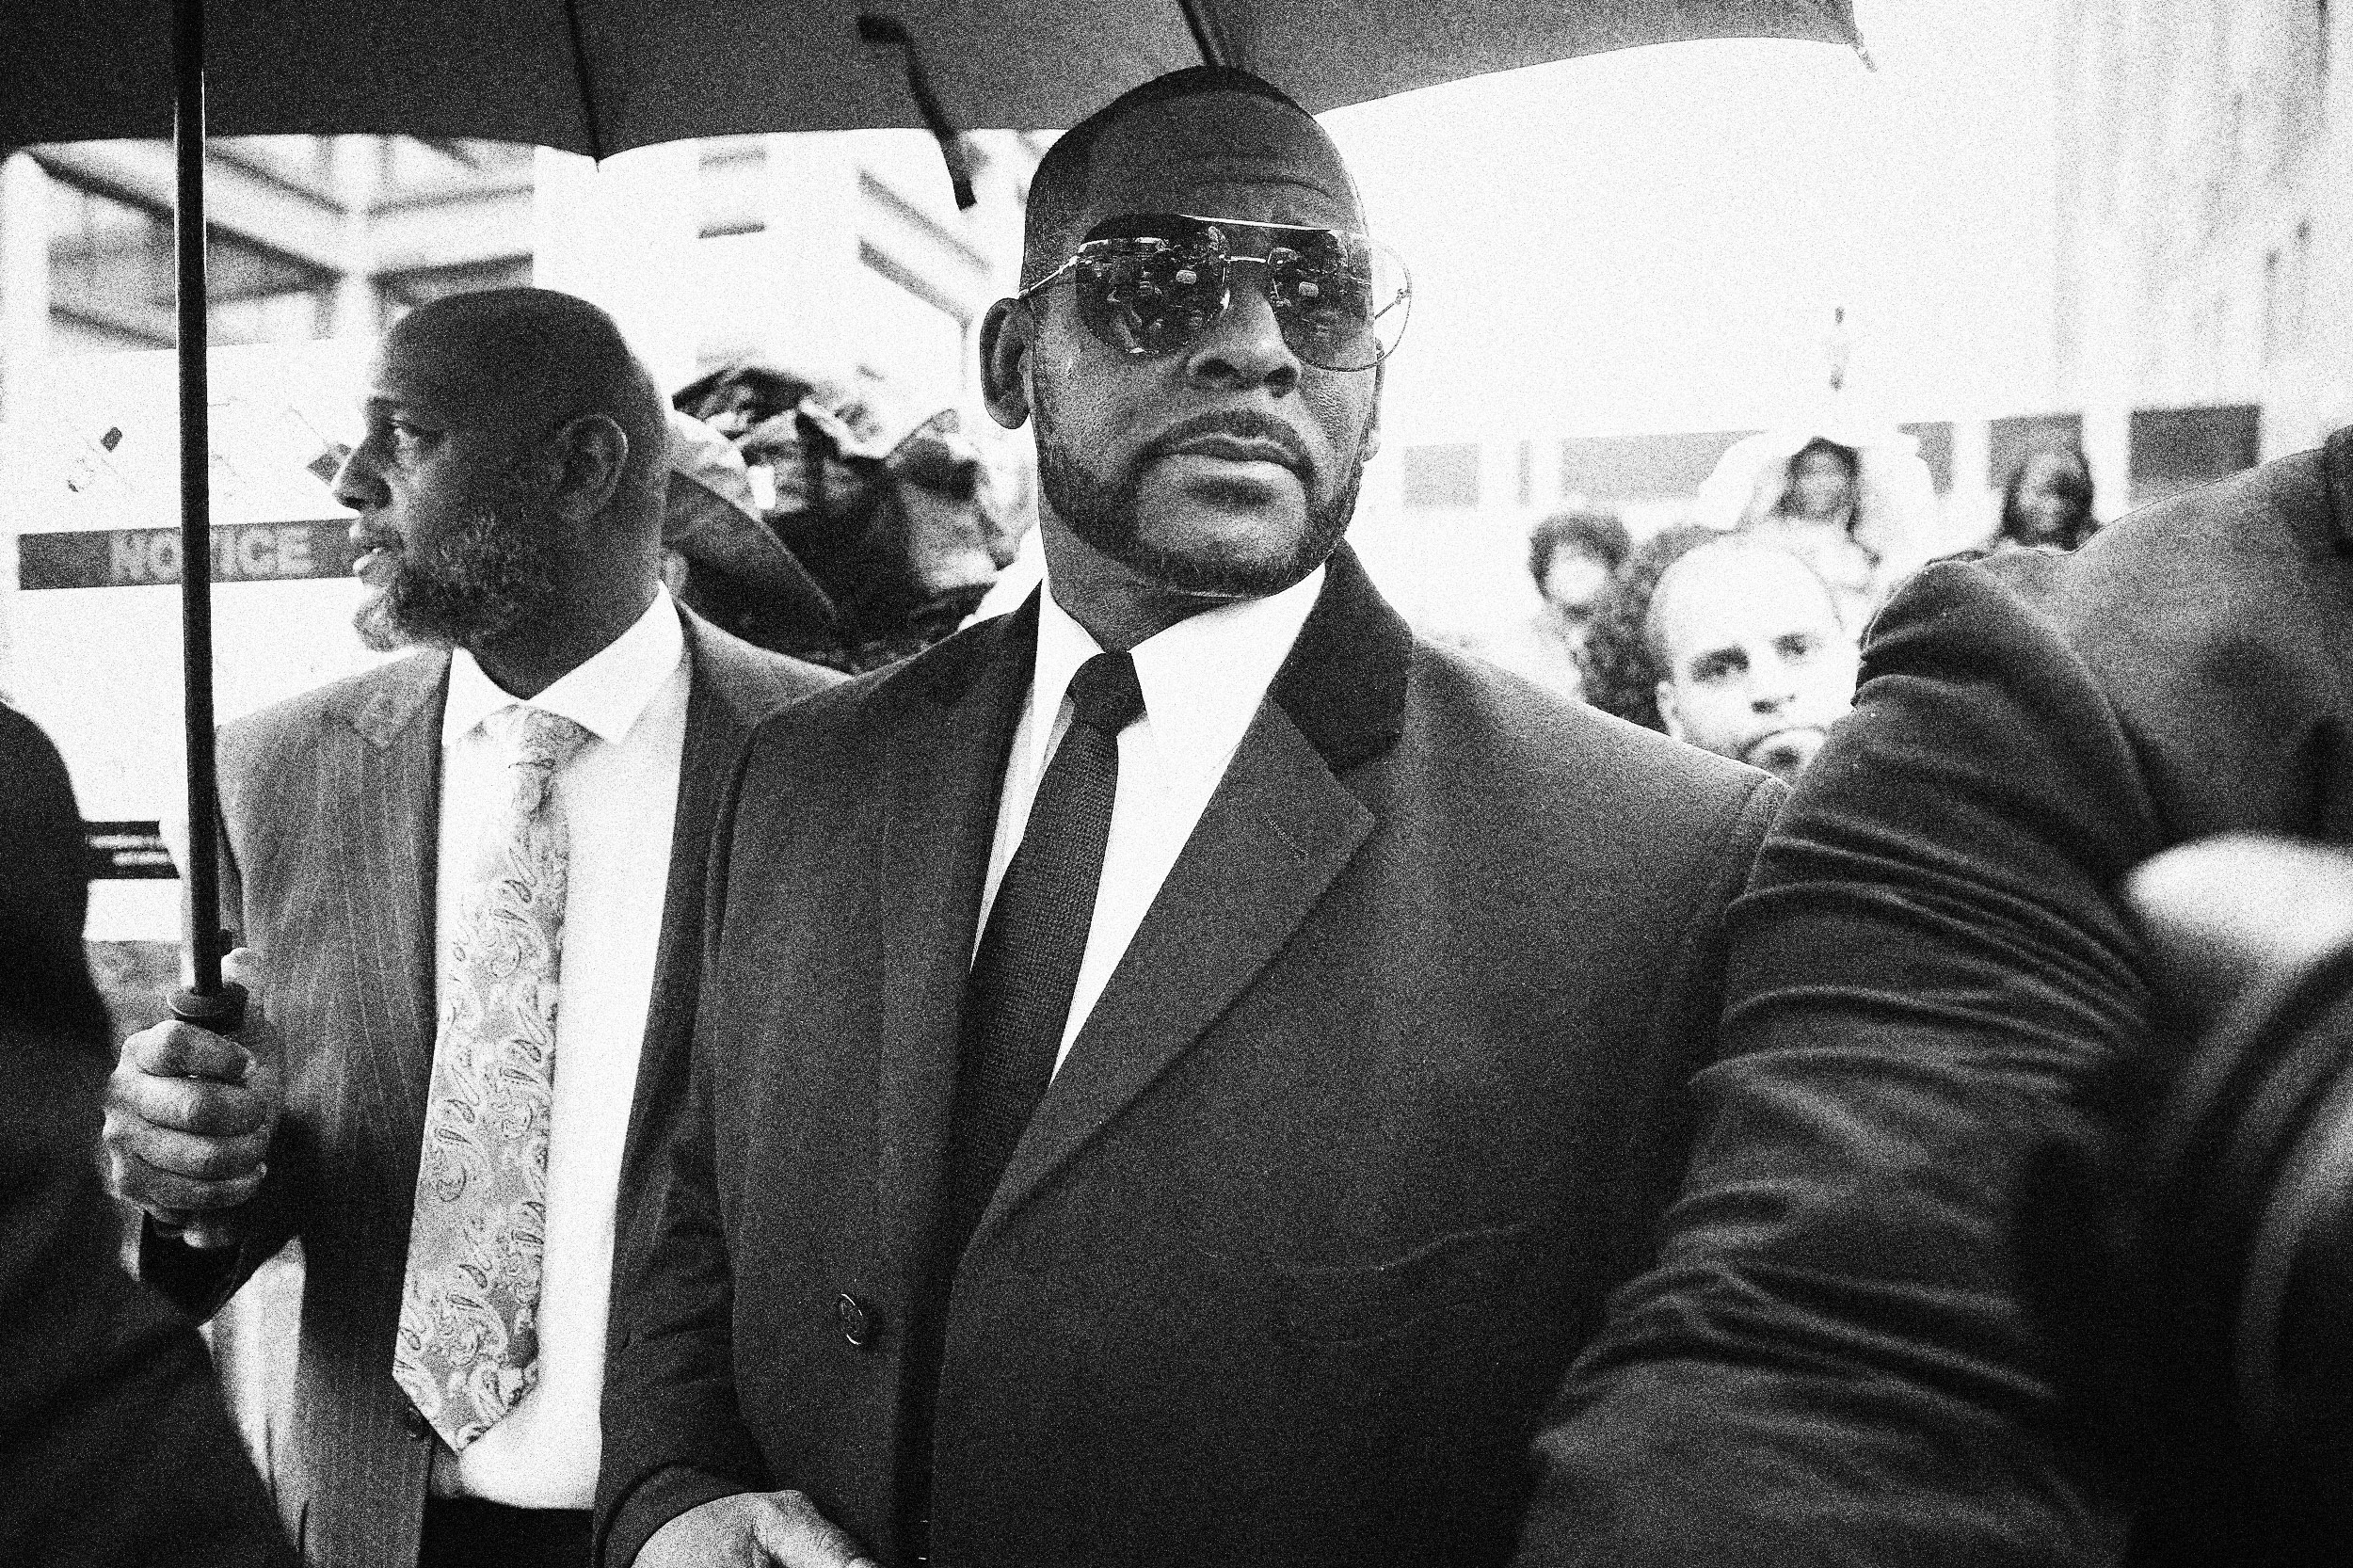 I have been calling out R. Kelly's crimes for years. I can't believe how long justice took.